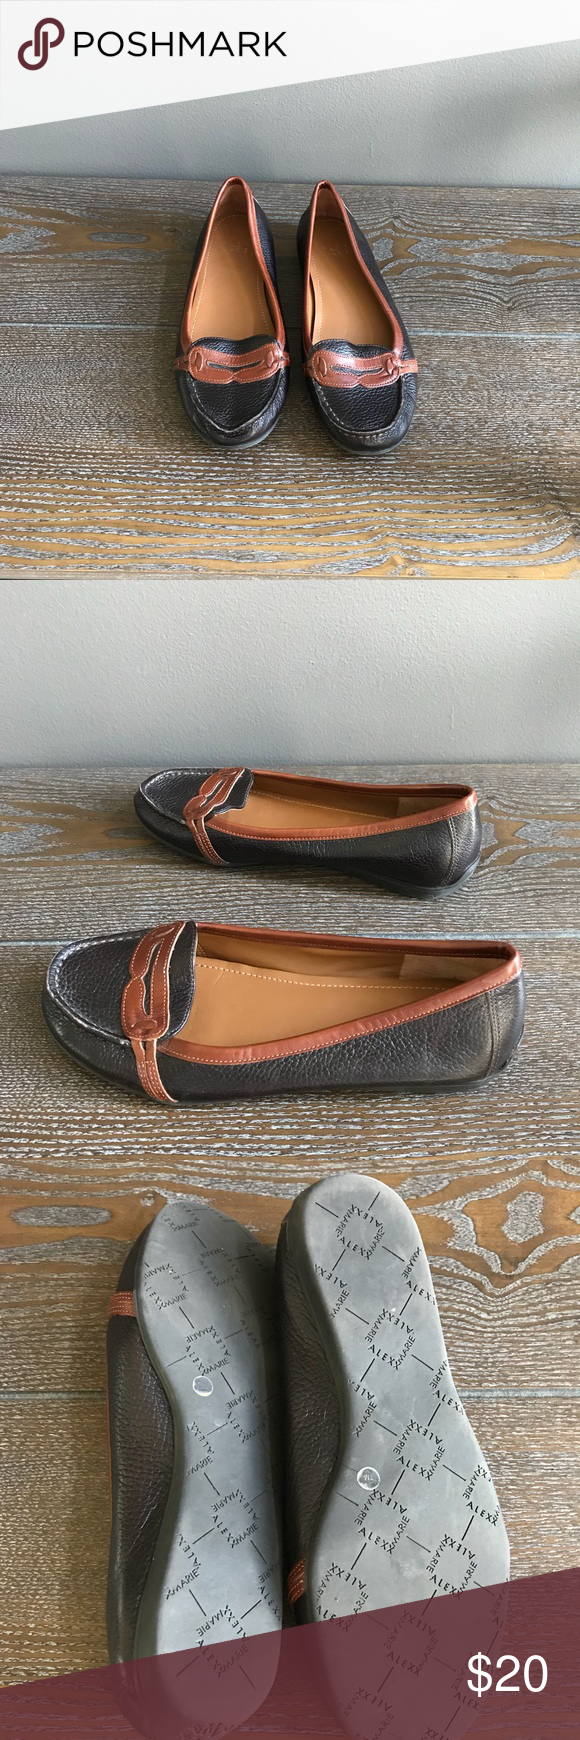 81f76c1ba9b Alex Marie flats 7M Black brown leather Dillard s Leather upper and manmade  sole Size 7 Dillard s exclusive Alex Marie Shoes Flats   Loafers